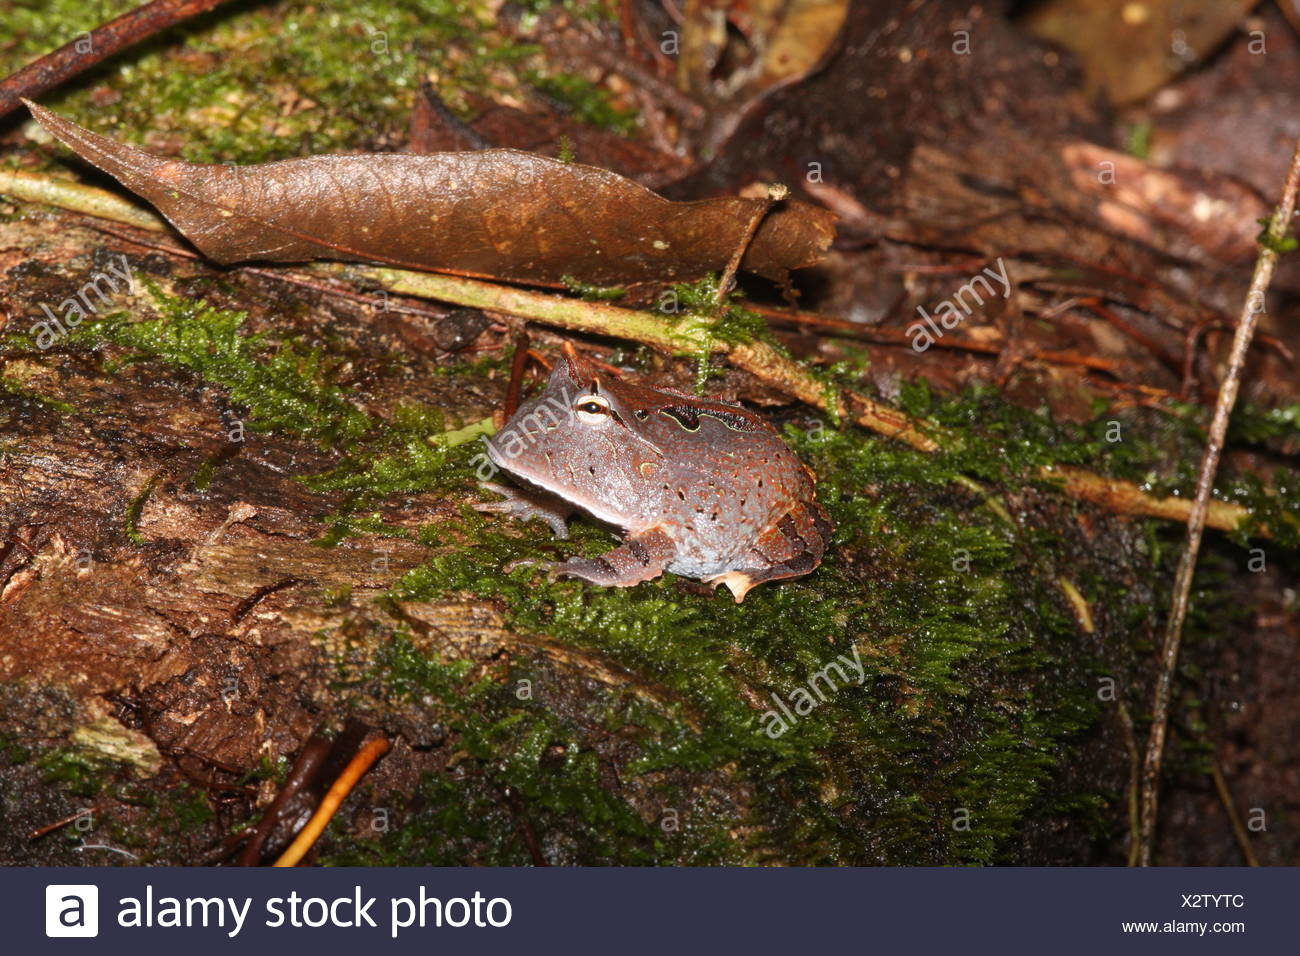 Amazon horned frog, Ceratophrys cornuta. Aggressively territorial and voracious. Will attack anything their size or smaller. Their ravenous appetite and huge mouths have earned them and other horned frogs the pet-trade nickname Pac Man frogs. - Stock Image